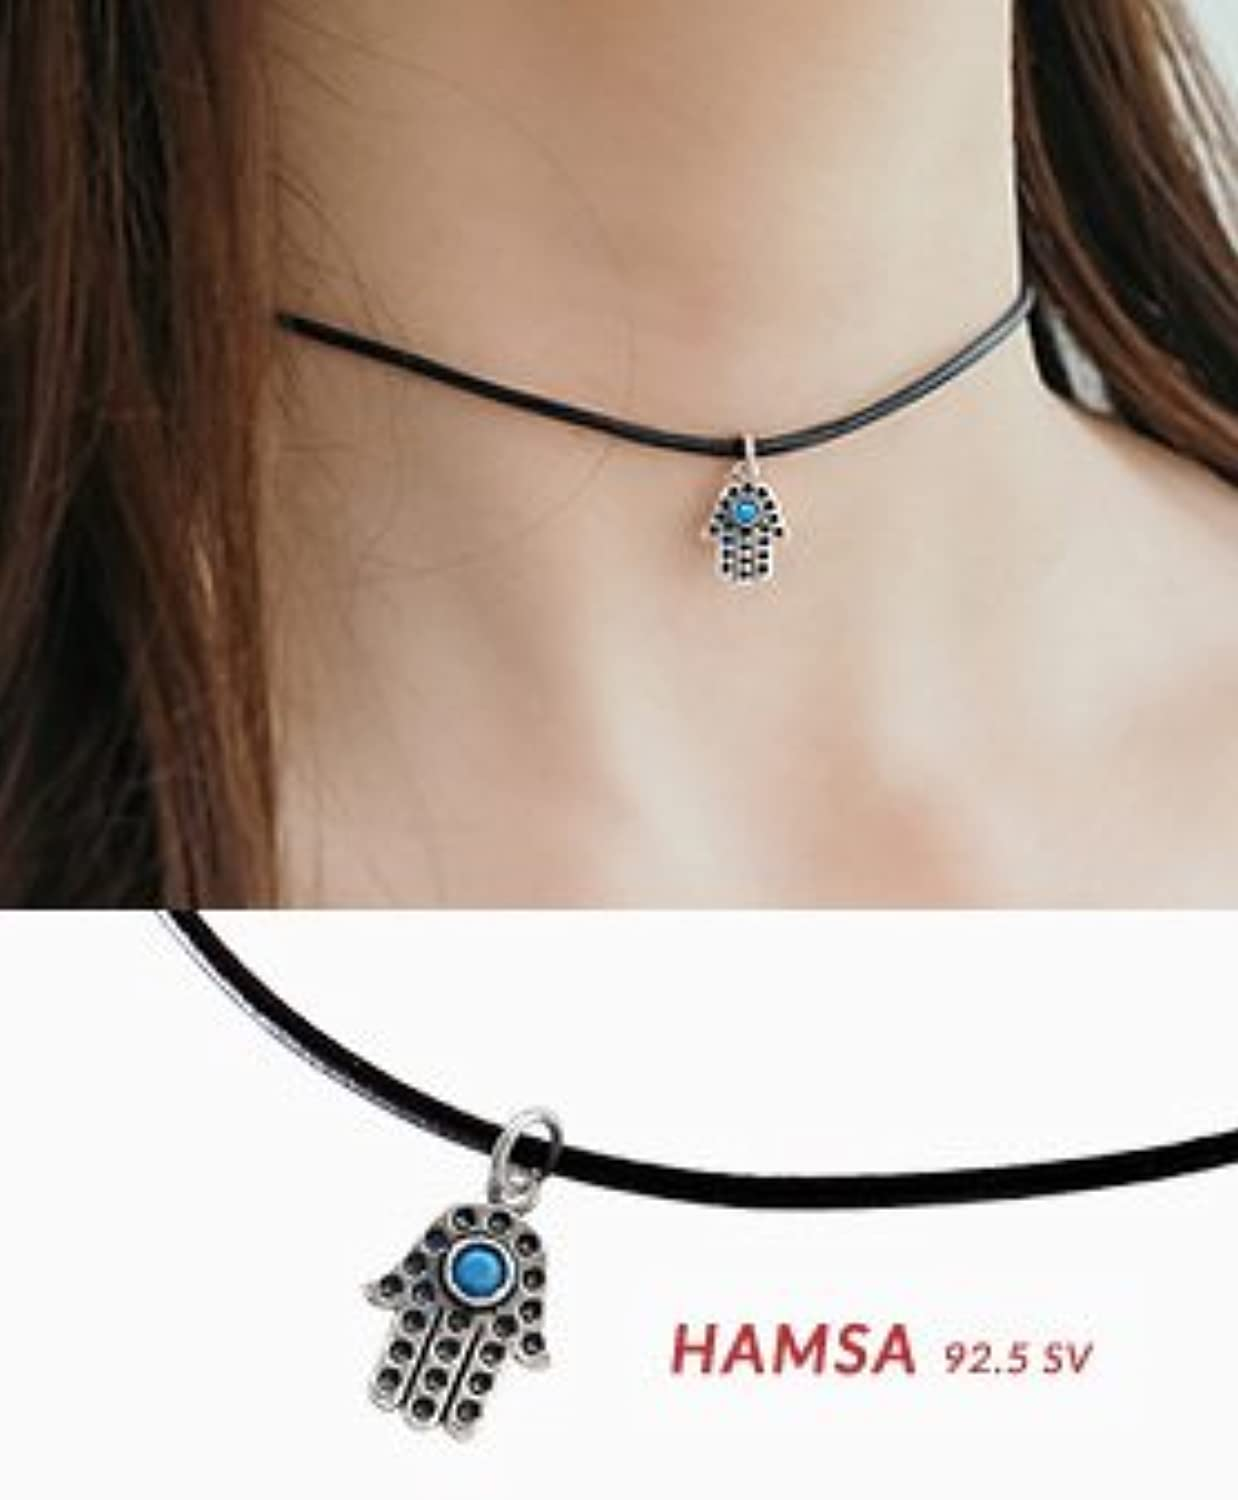 Korea Shopping Shopping 4 Fashion Elegant Retro Diamond Exquisite Little Hand Leather Necklace Pendant 925 Silver Necklace